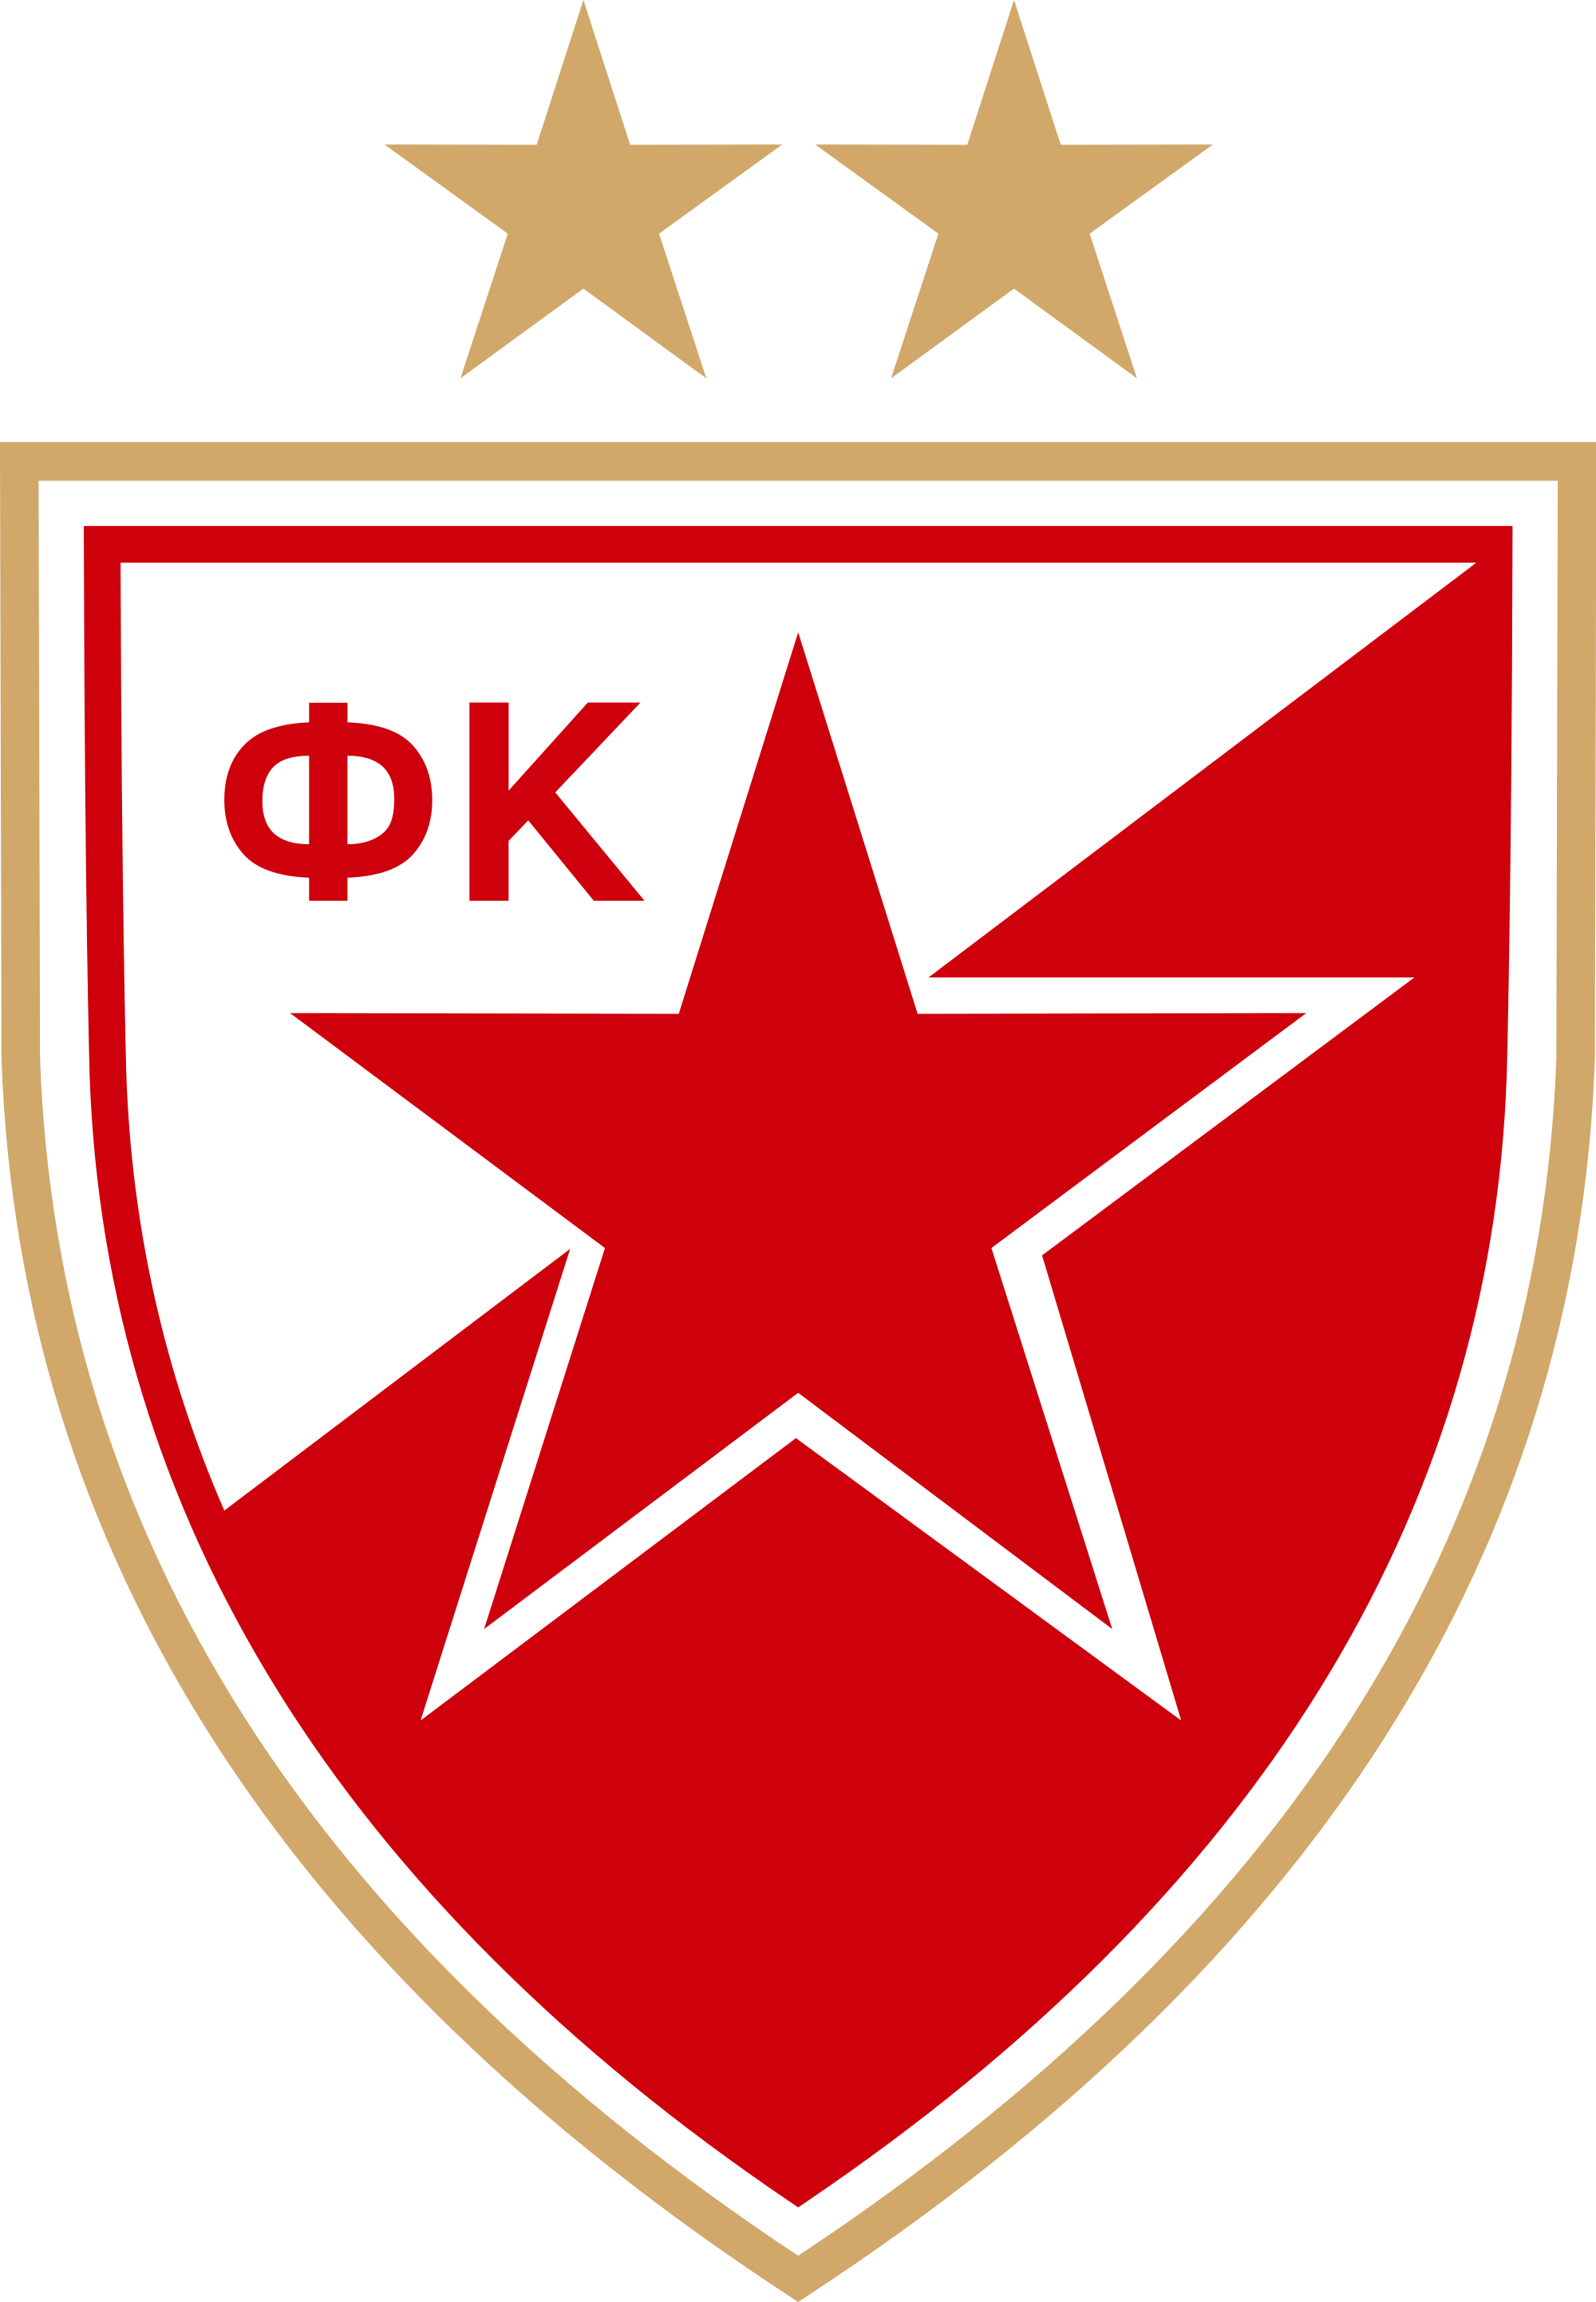 Free Red Star Picture, Download Free Clip Art, Free Clip Art on ...